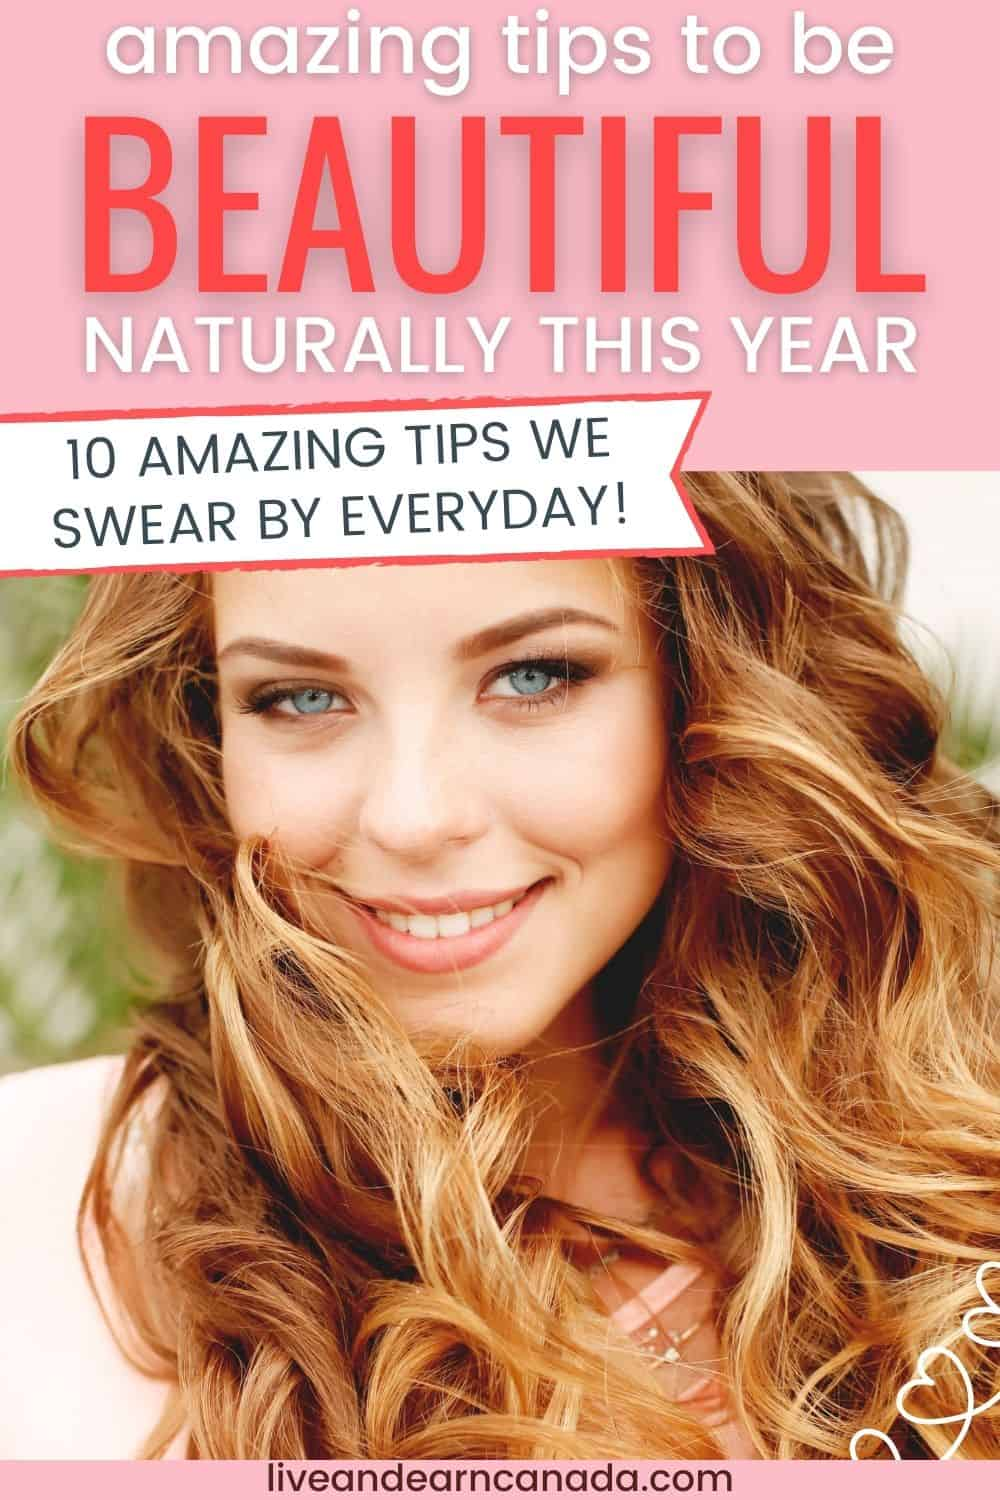 Amazing Beauty Hacks For Your Major Problem Areas! Here are my main tips on how to be beautiful naturally. Want to know all the best beauty hacks every girl should know? These makeup, natural skincare, and hairstyle tips and tricks for women and teens are life changing! If you love DIY and lifehacks, then you are about to be blown away! how to be beautiful, how to be more attractive, glow up tips, Glow up plan, Glow up routine, Beauty makeover, Glow up transformation, Glo up tips, glow up list, Girl life hacks, Back to school, Beauty Improvement, Become pretty, Improve your appearance, Beauty tips